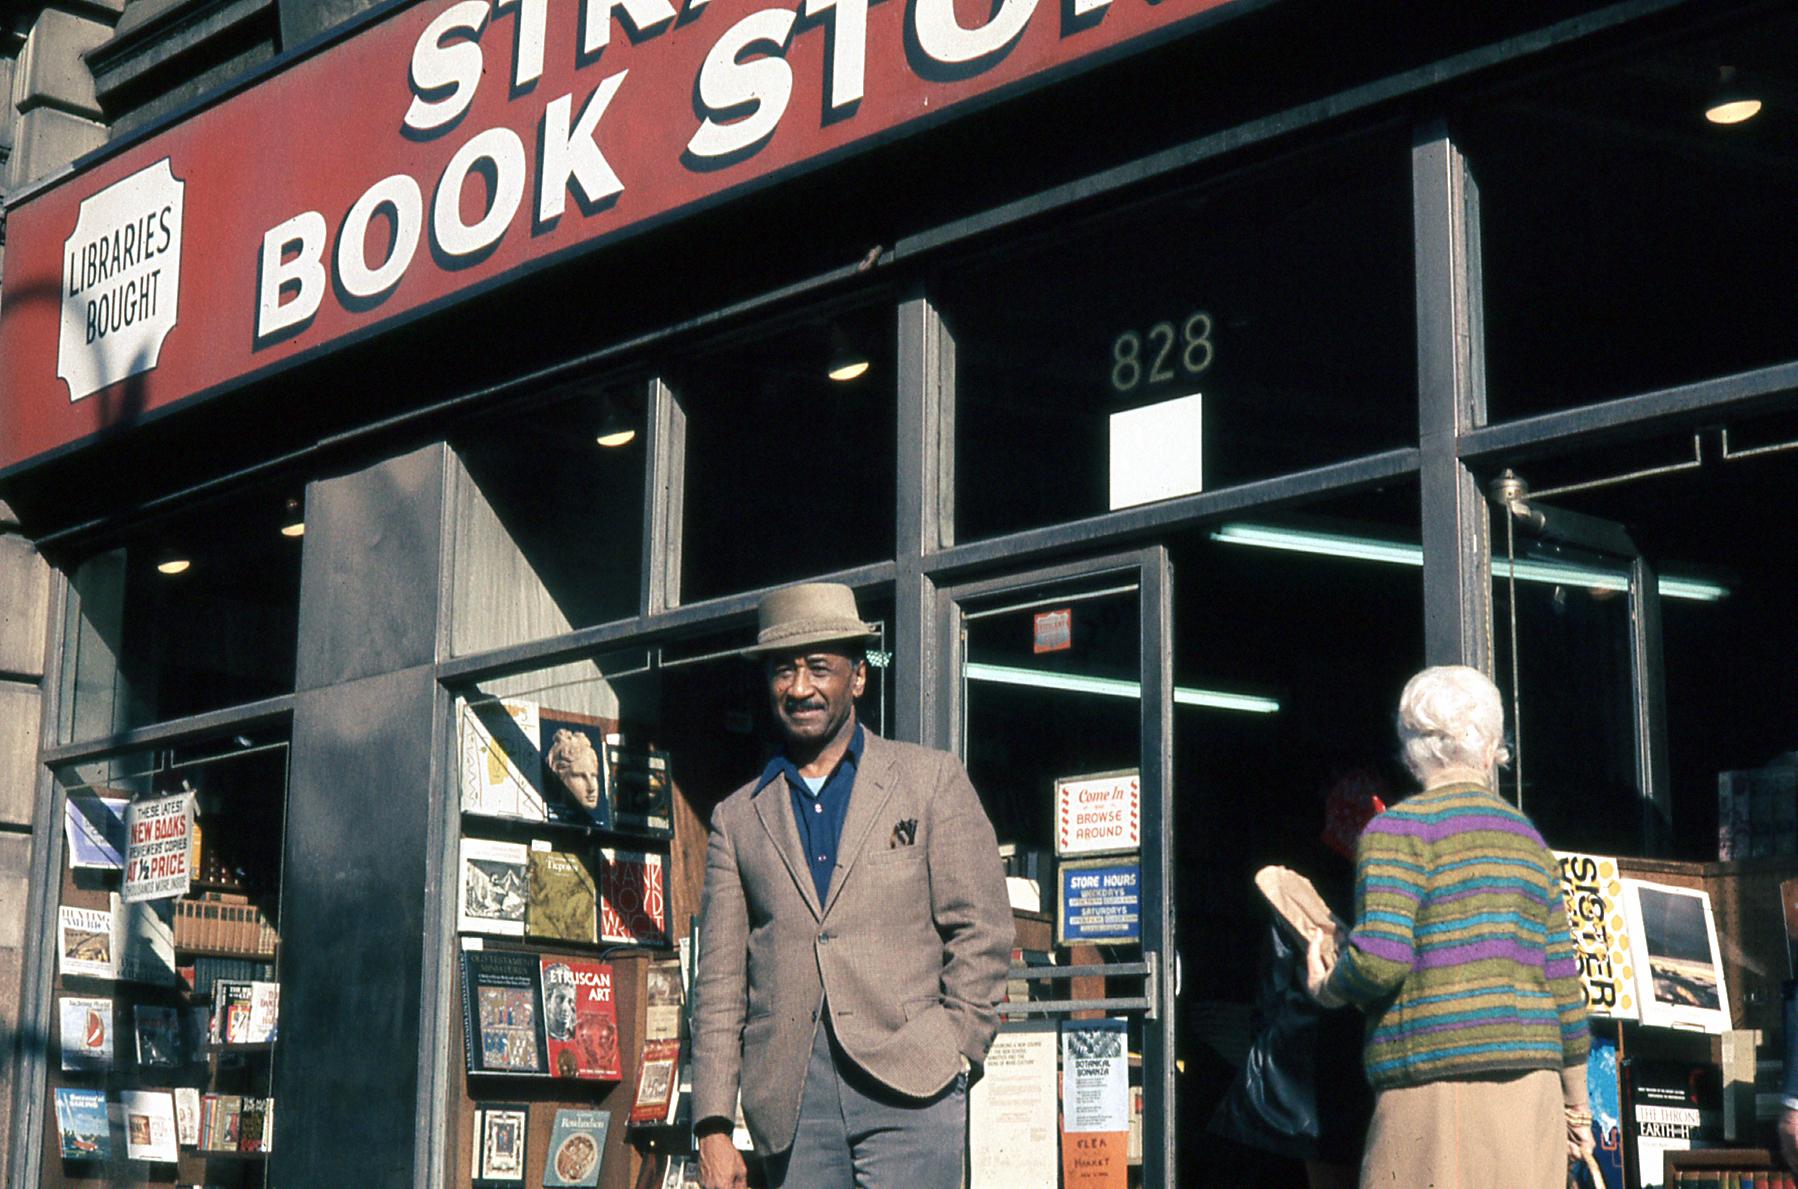 Murray outside of the Strand (c. late 1970s). © The Albert Murray Trust.